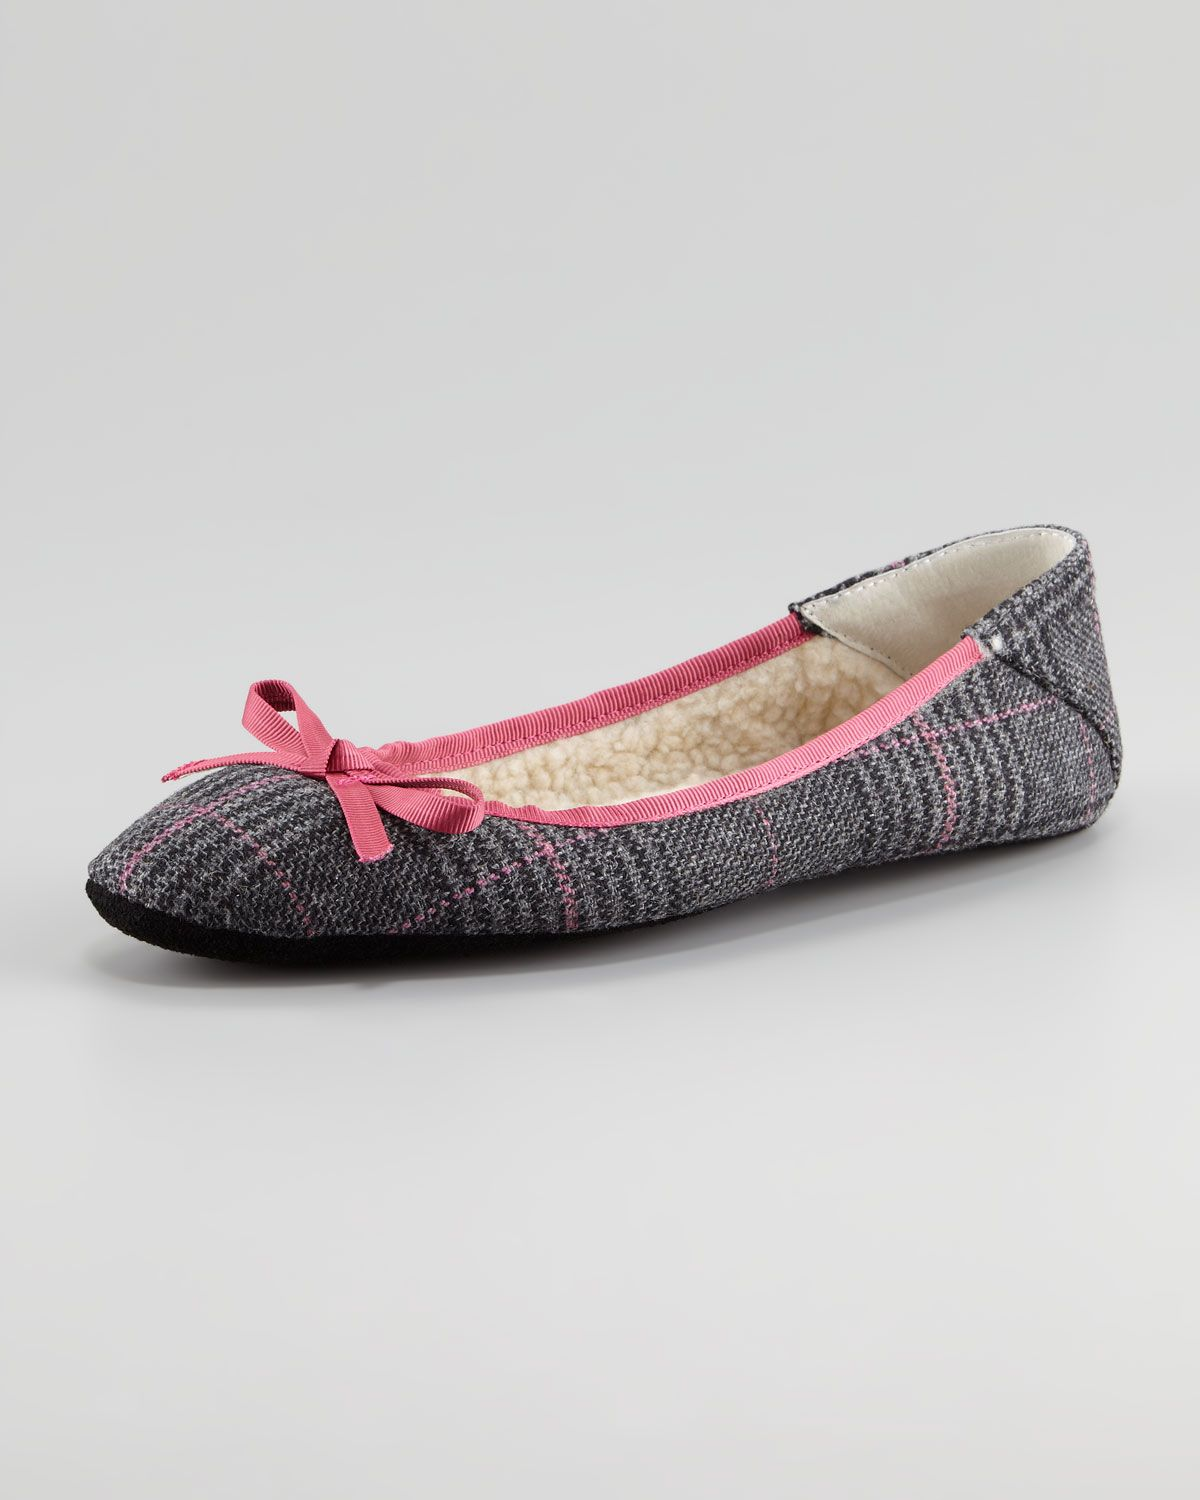 4d00ce1b8 http   ncrni.com jacques-levine-inslee-bow-faux-shearling-slipper -p-15089.html